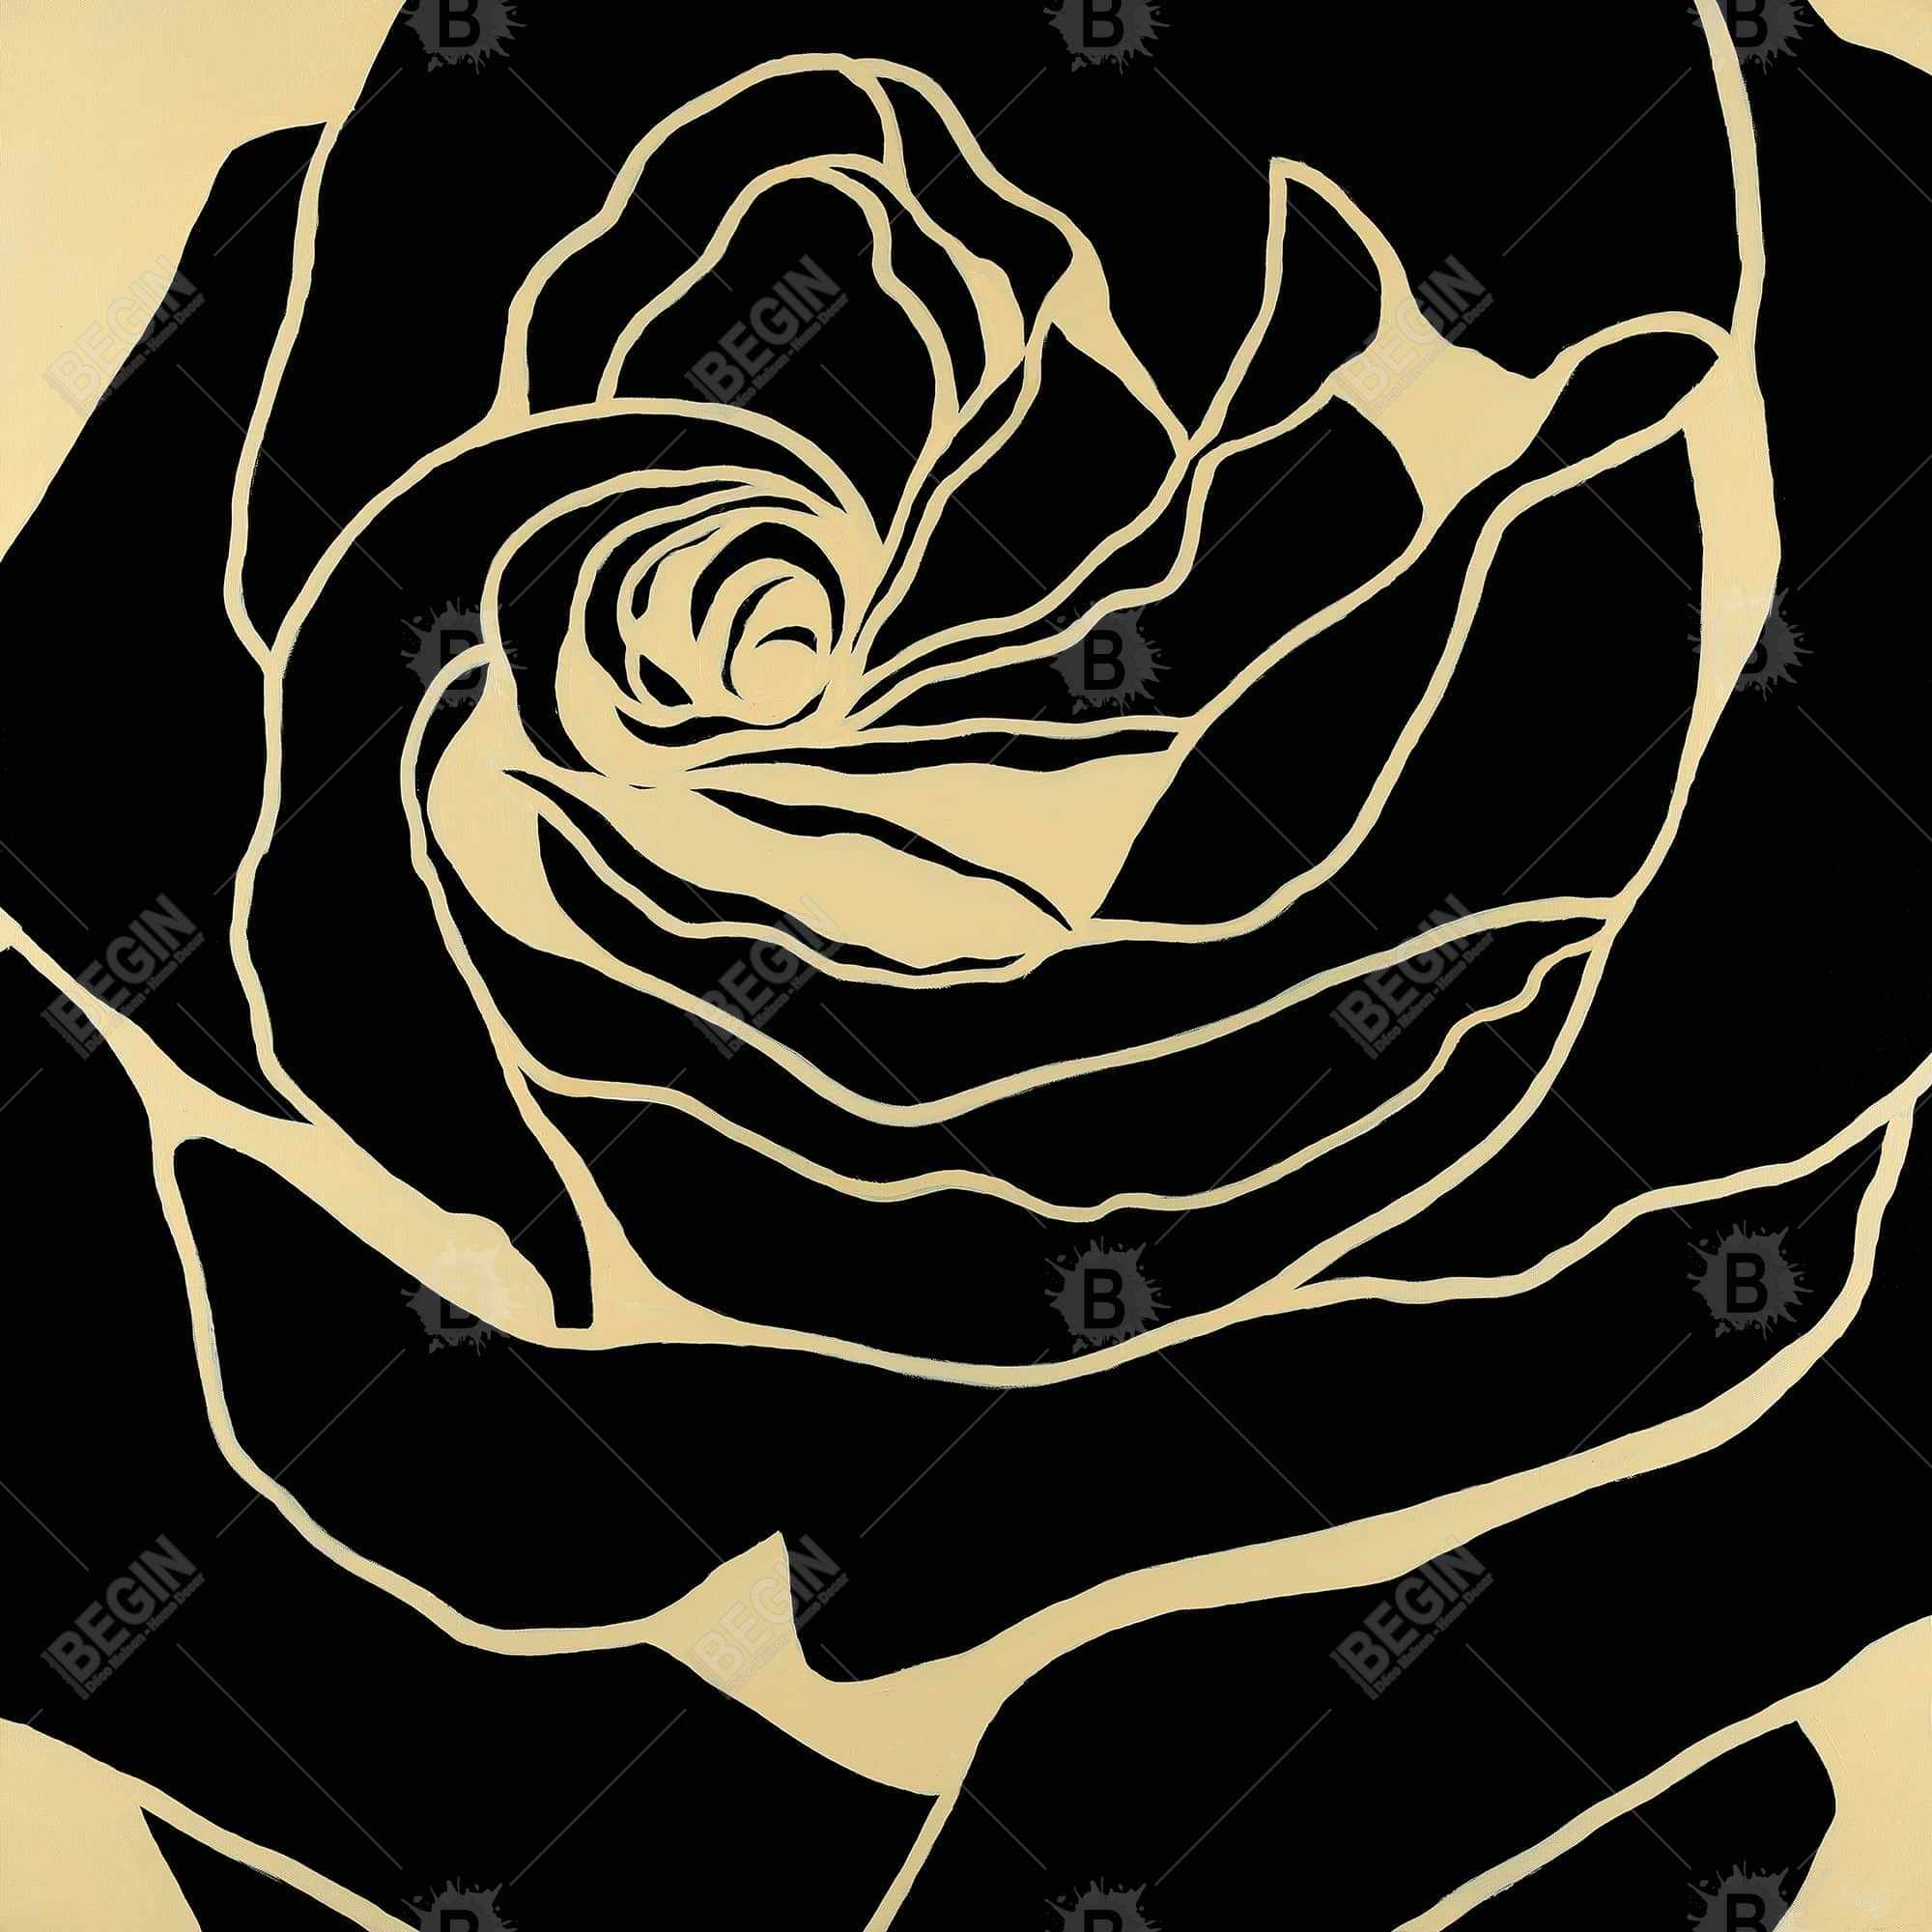 Cutout black rose